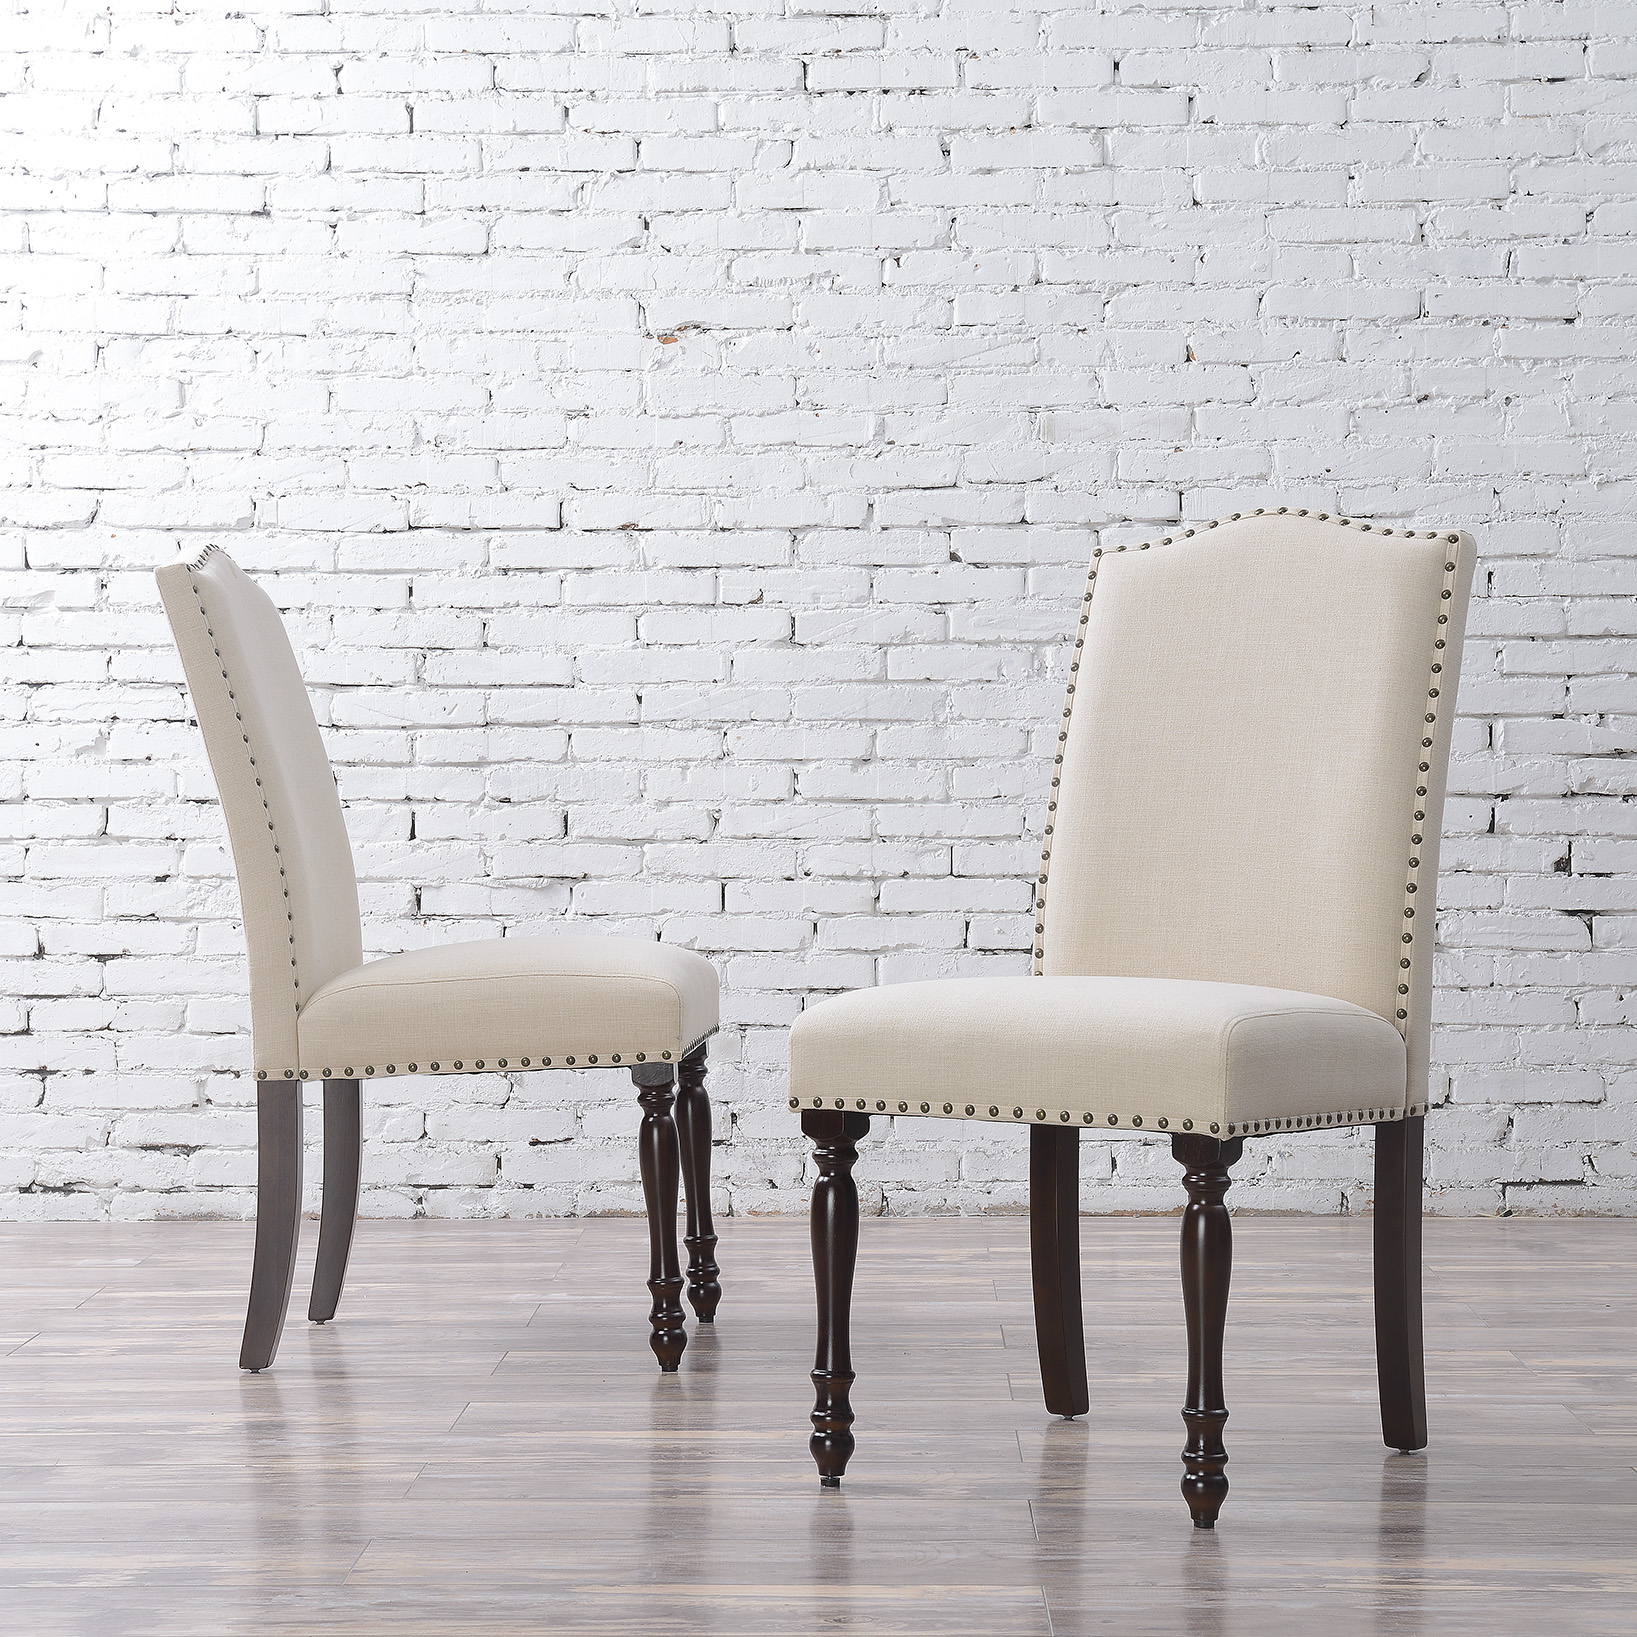 Elegant-Set-of-2-Parson-Chair-Linen-Seat-Cushion-Dining-Chairs-Beige-Gray thumbnail 3